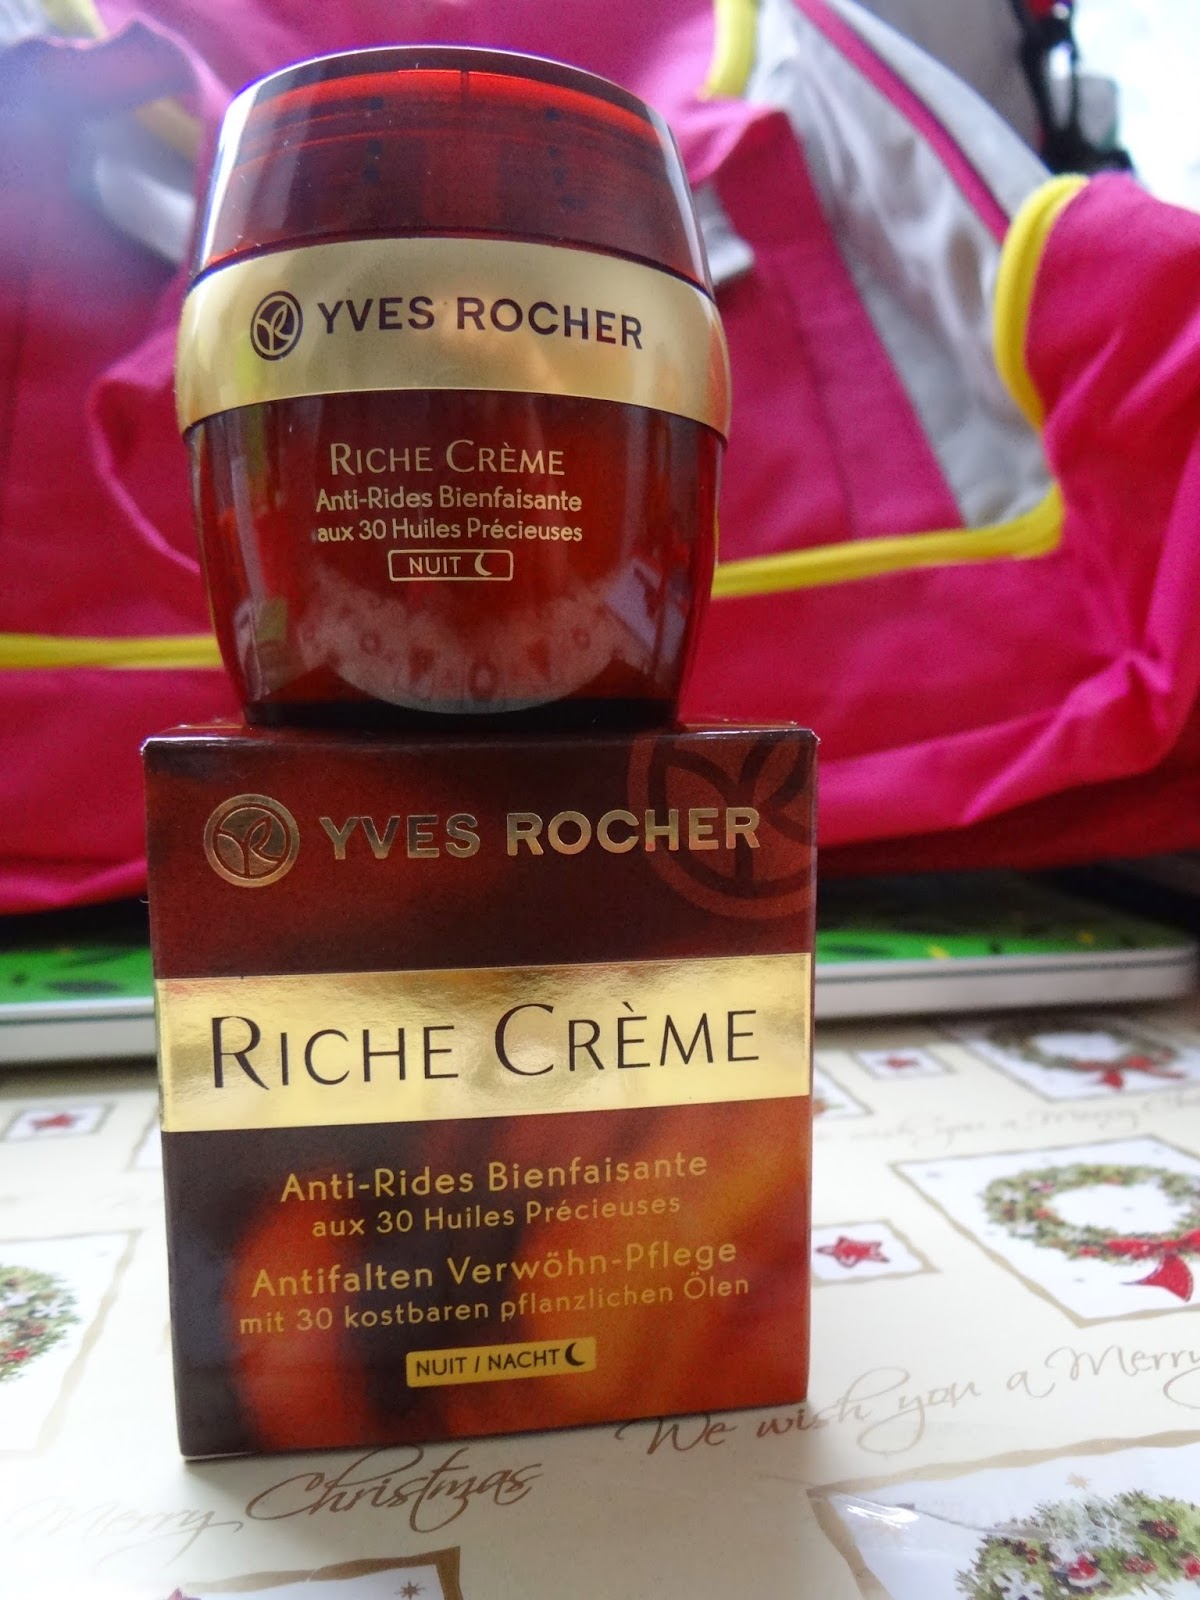 creme anti ride yves rocher